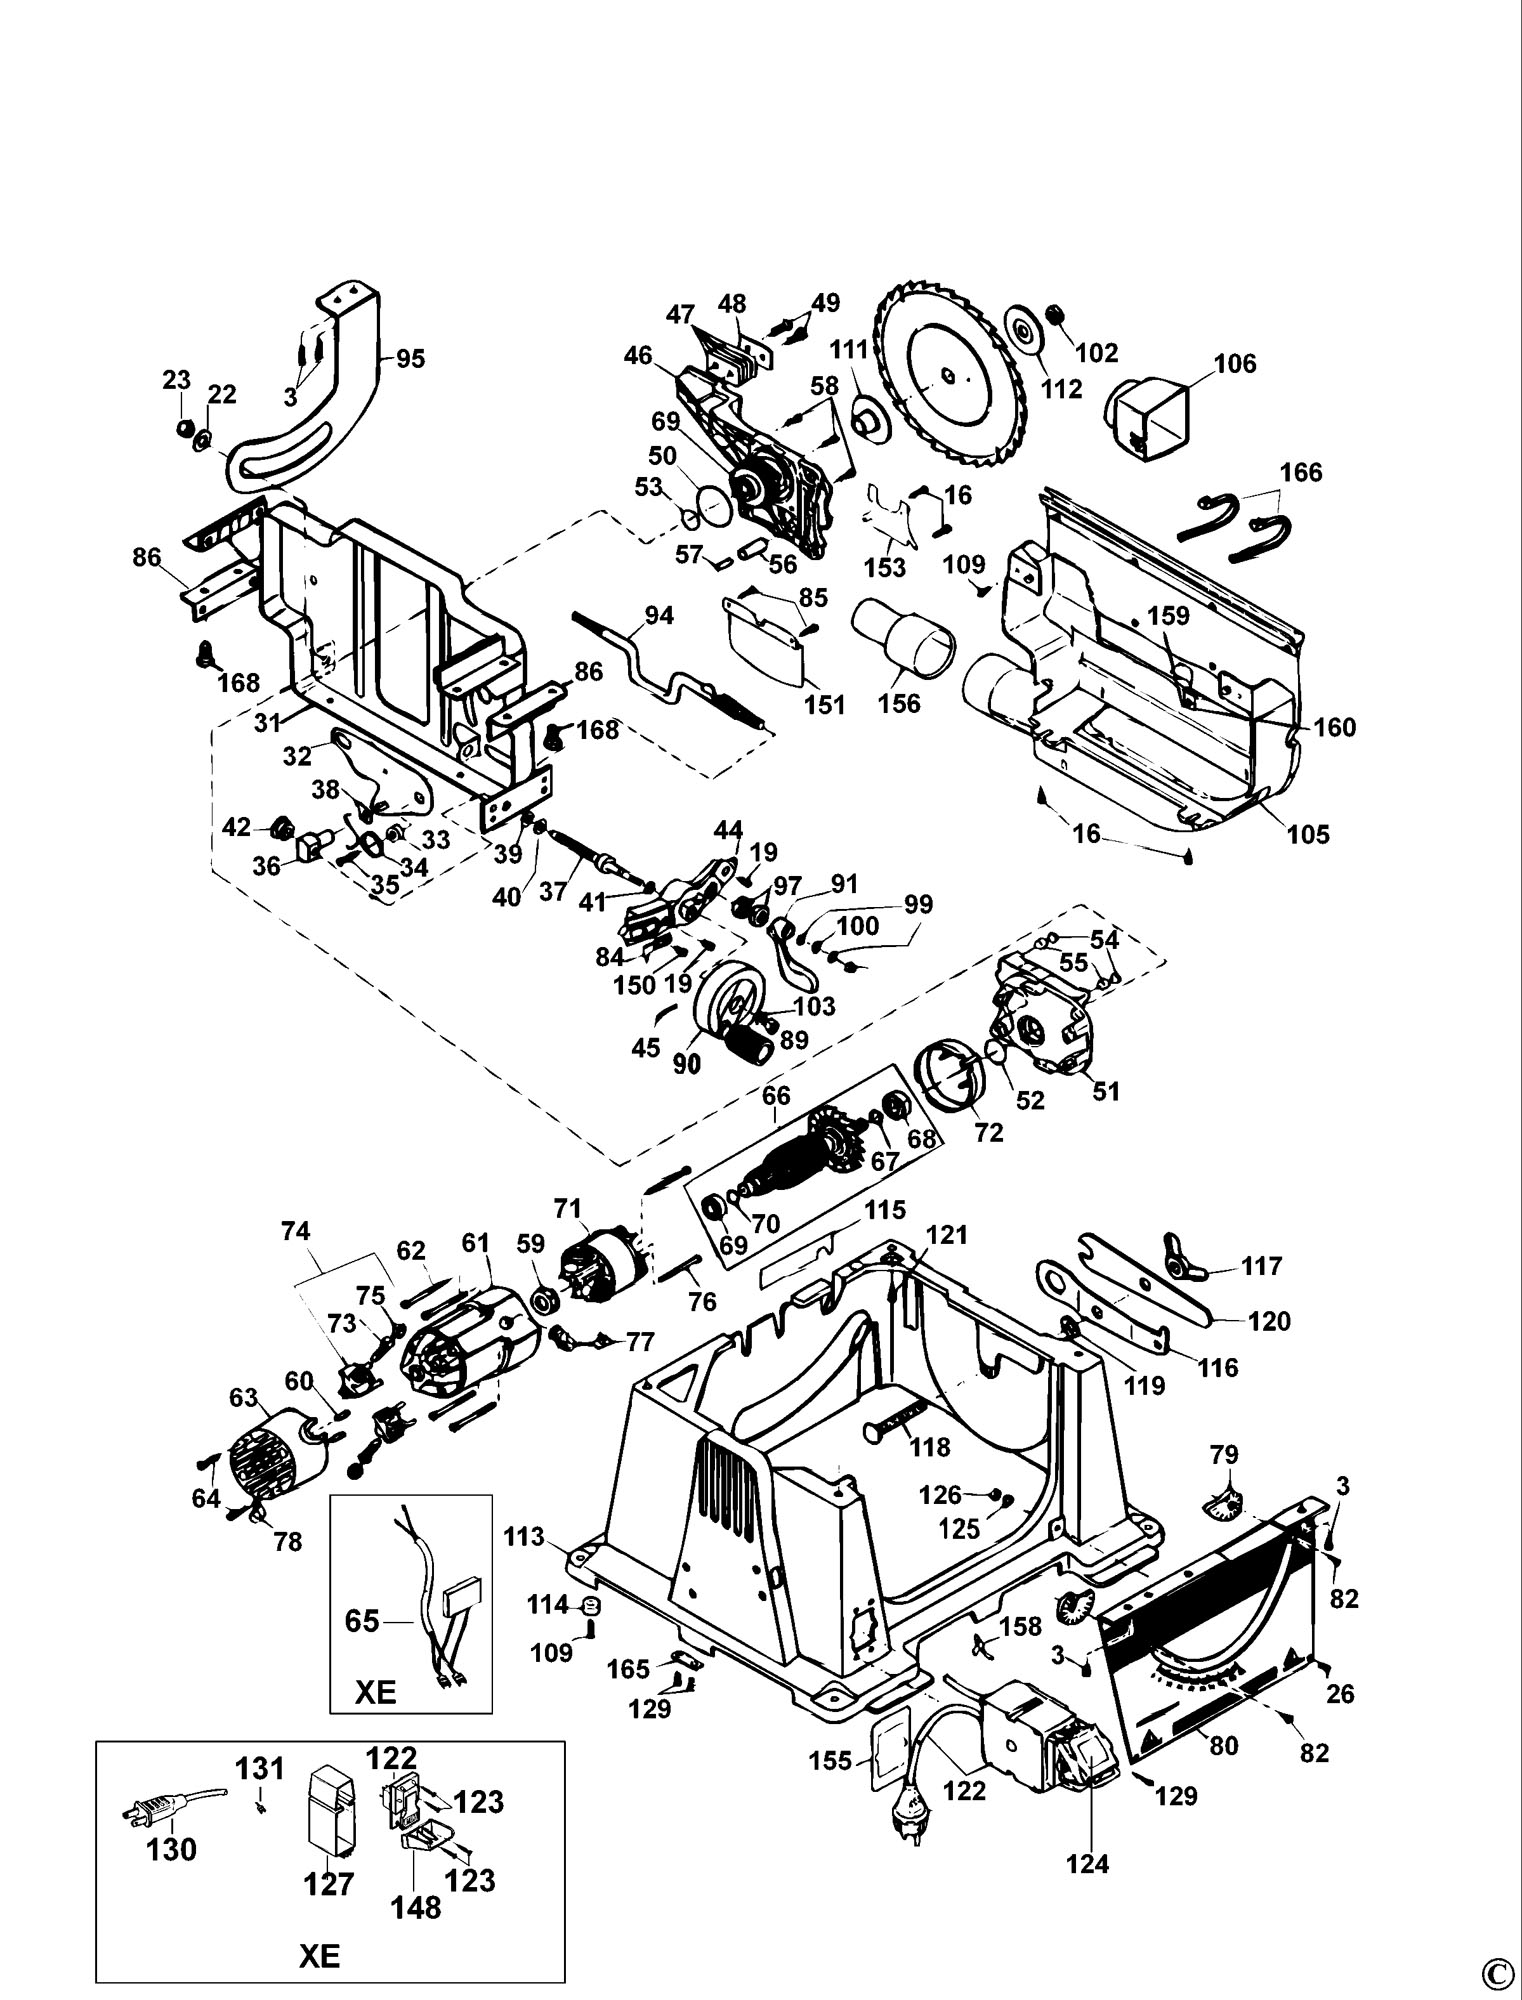 hight resolution of spares for dewalt dw744 table saw type 2 spare dw744 type 2 from dw744 table saw wiring diagram